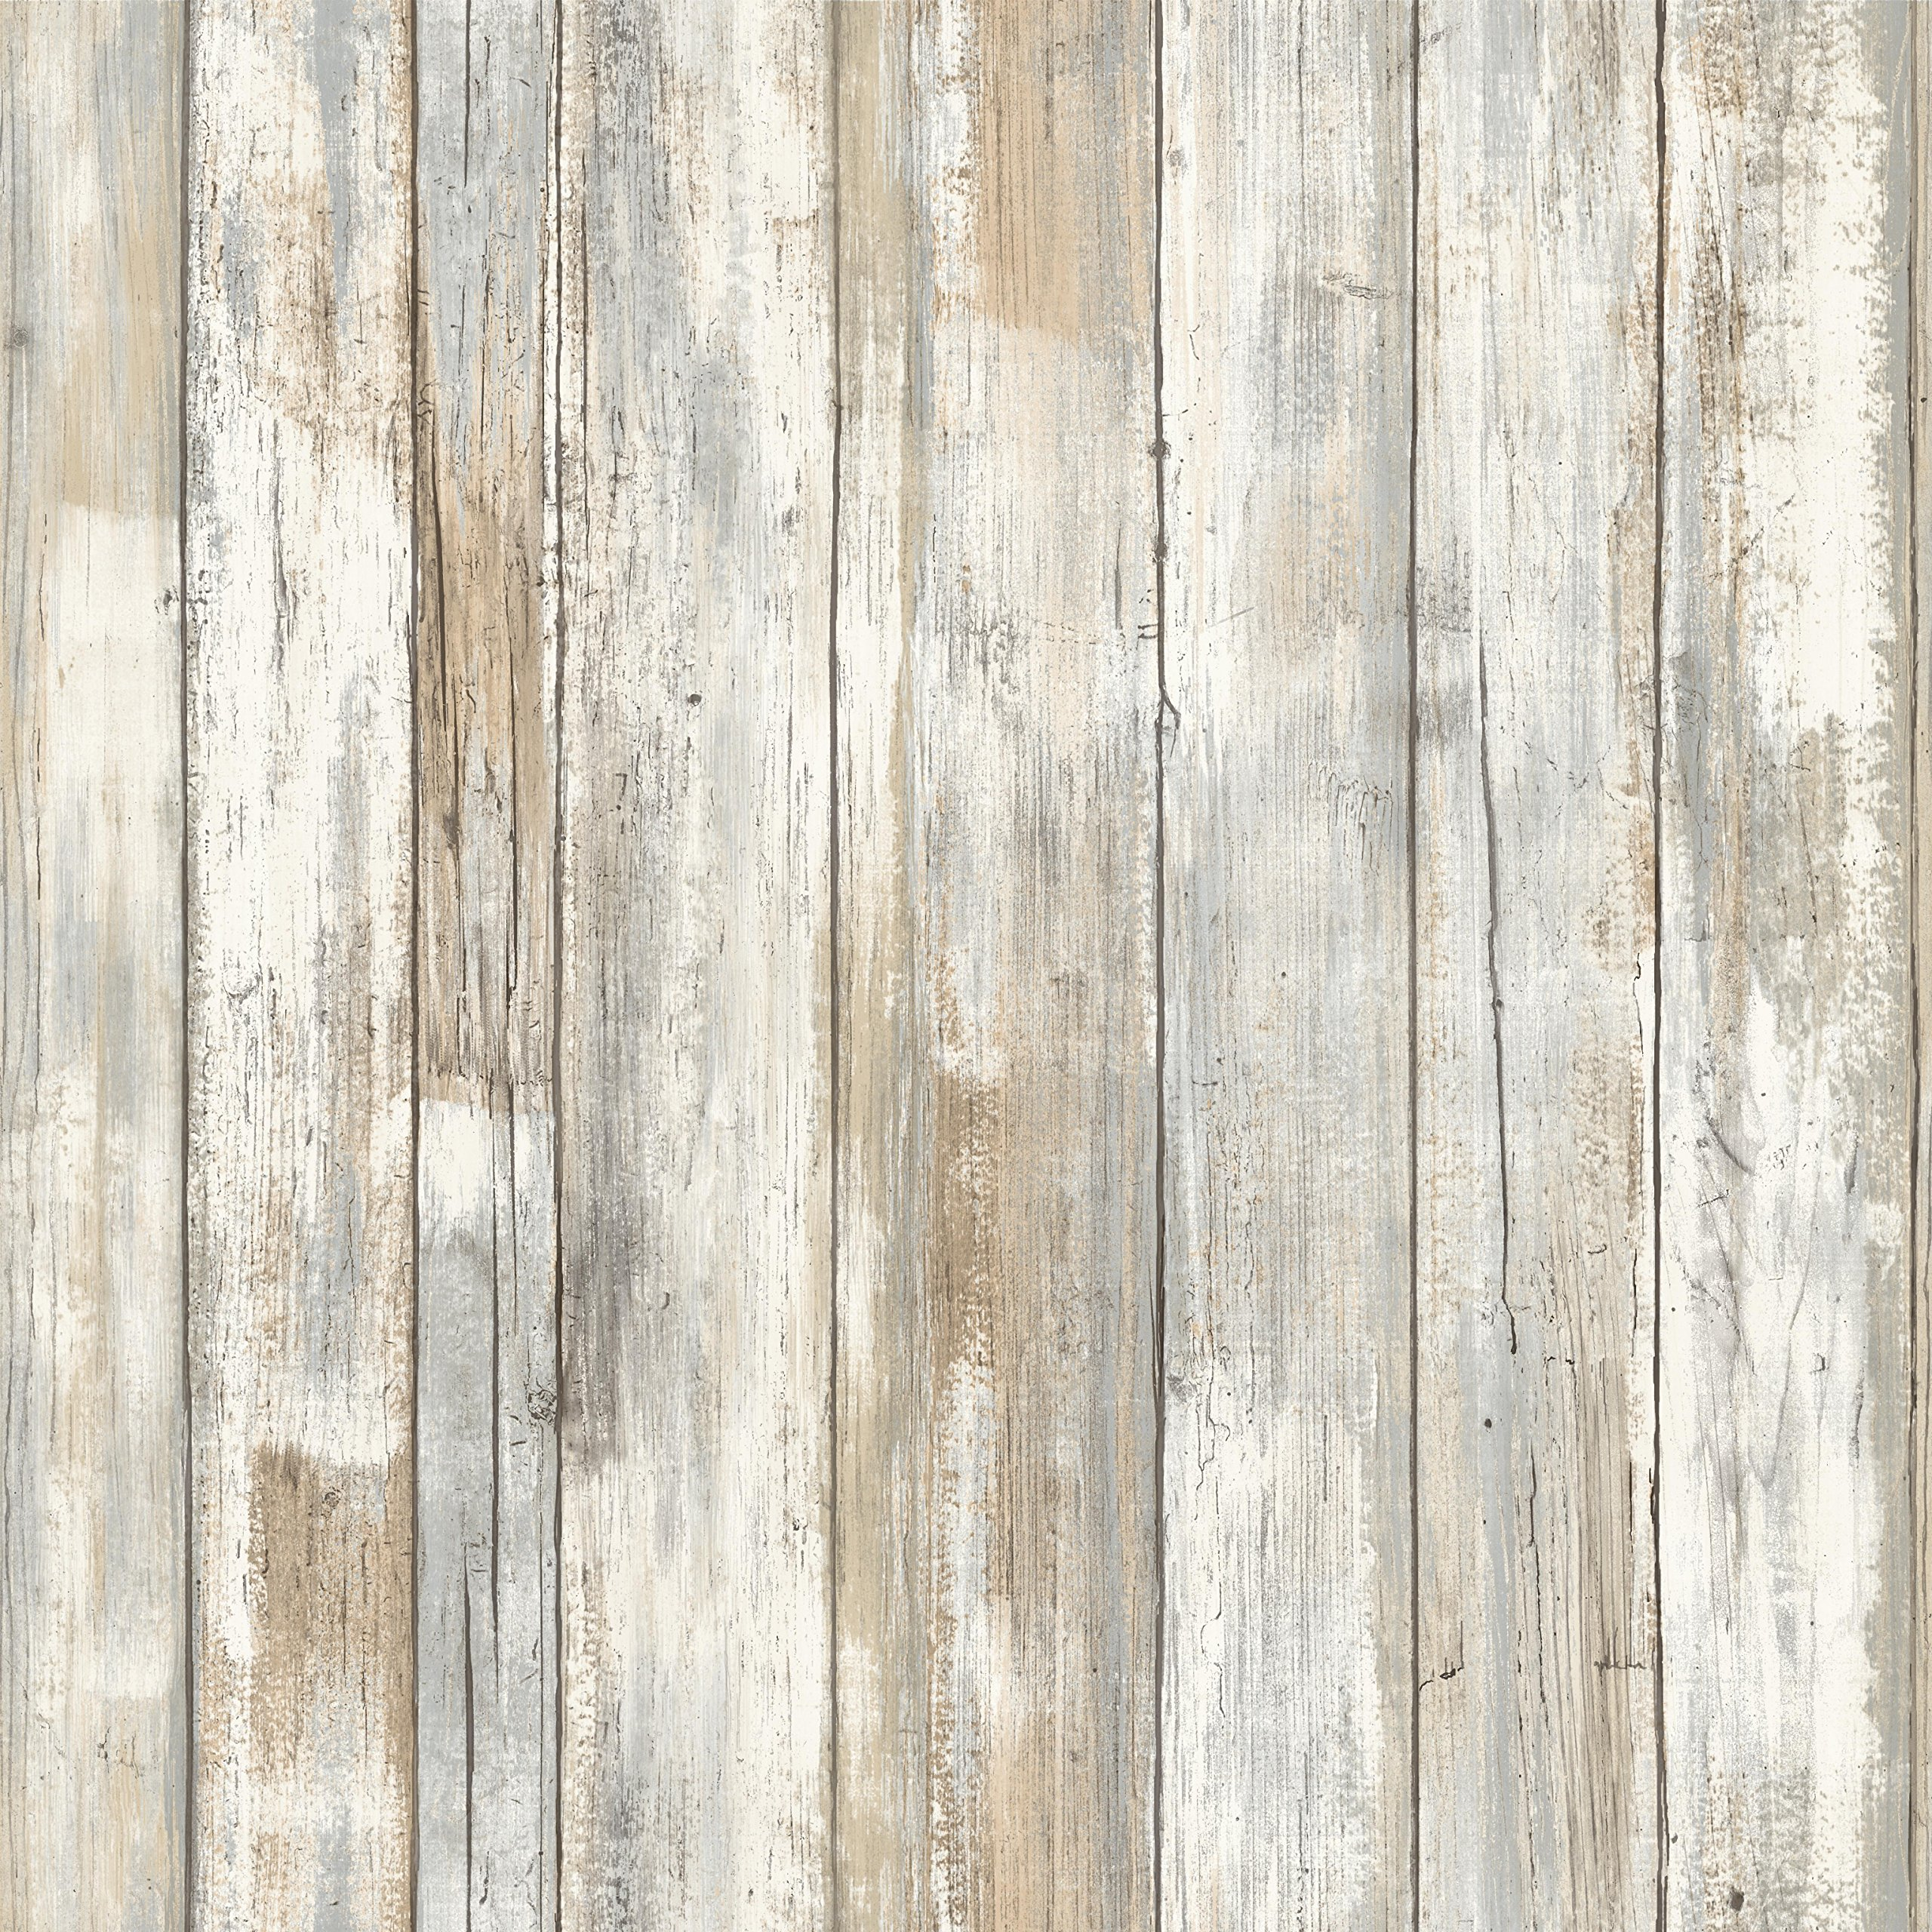 RoomMates Distressed Wood Peel and Stick Wallpaper by RoomMates